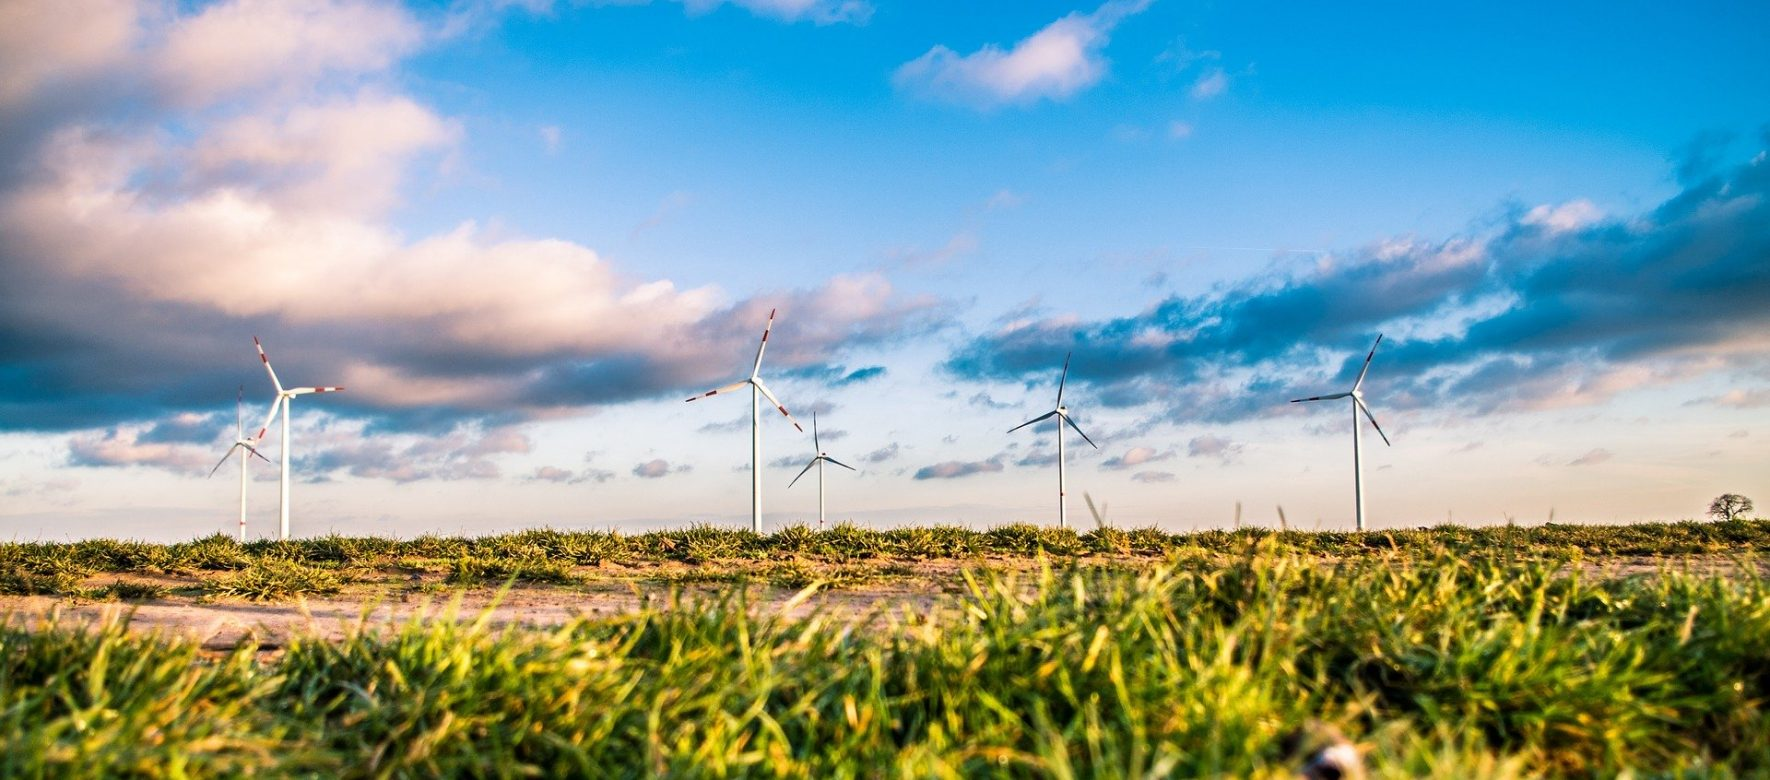 Egypt to spend $ 27.6 billion on 691 green projects in 2020/21 fiscal year 1